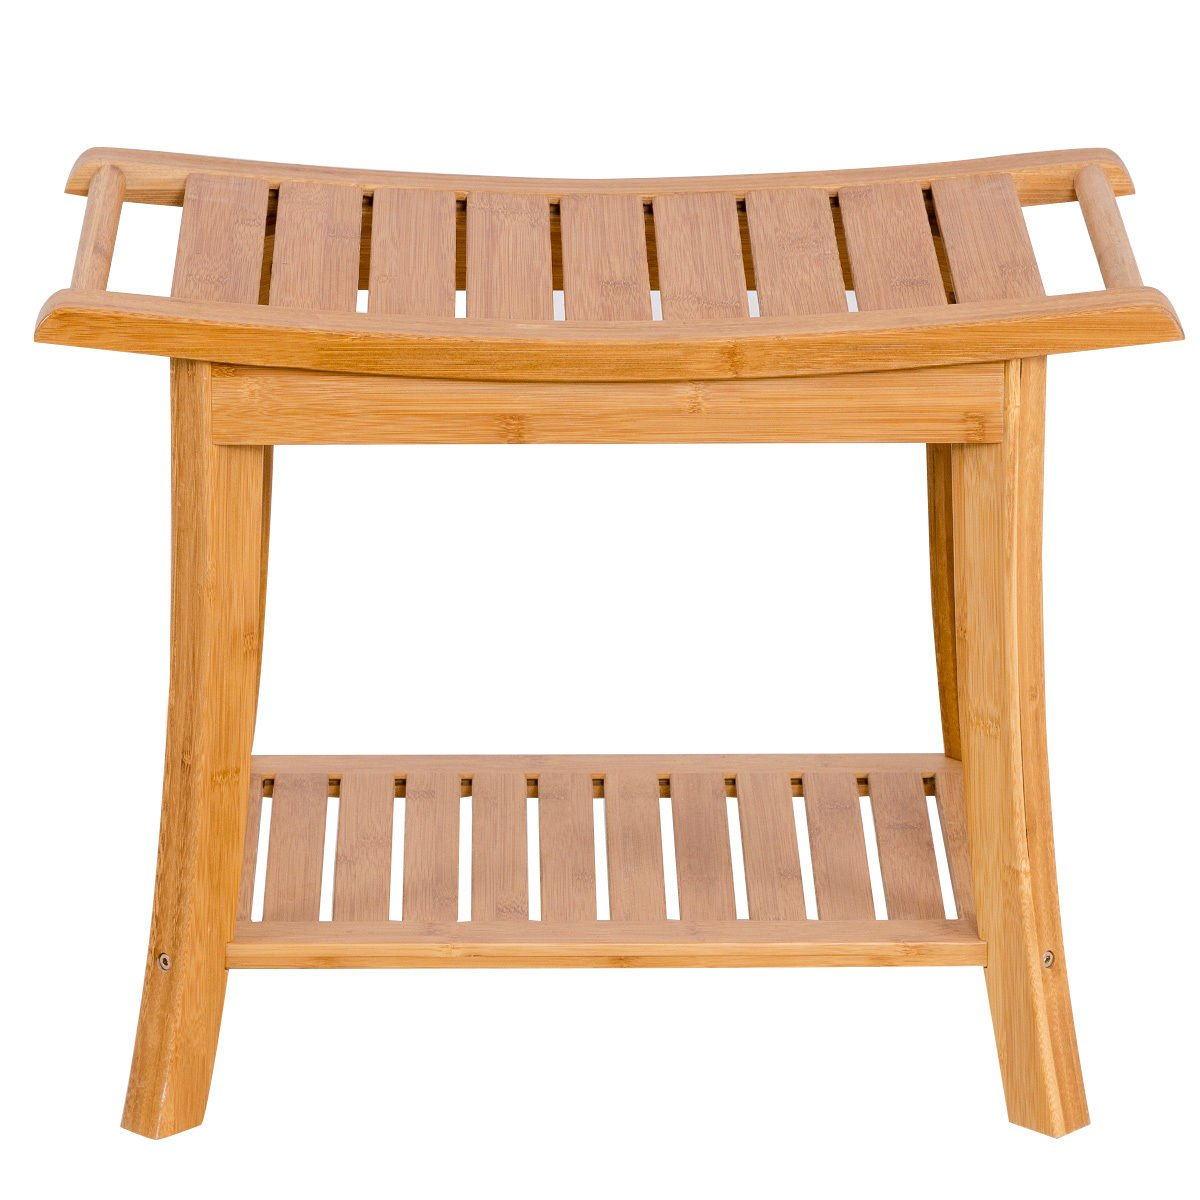 Heaven Tvcz Seat Bench Bamboo Shower Racks Shelf Bathroom Spa Bath Organizer Stool w/Storage